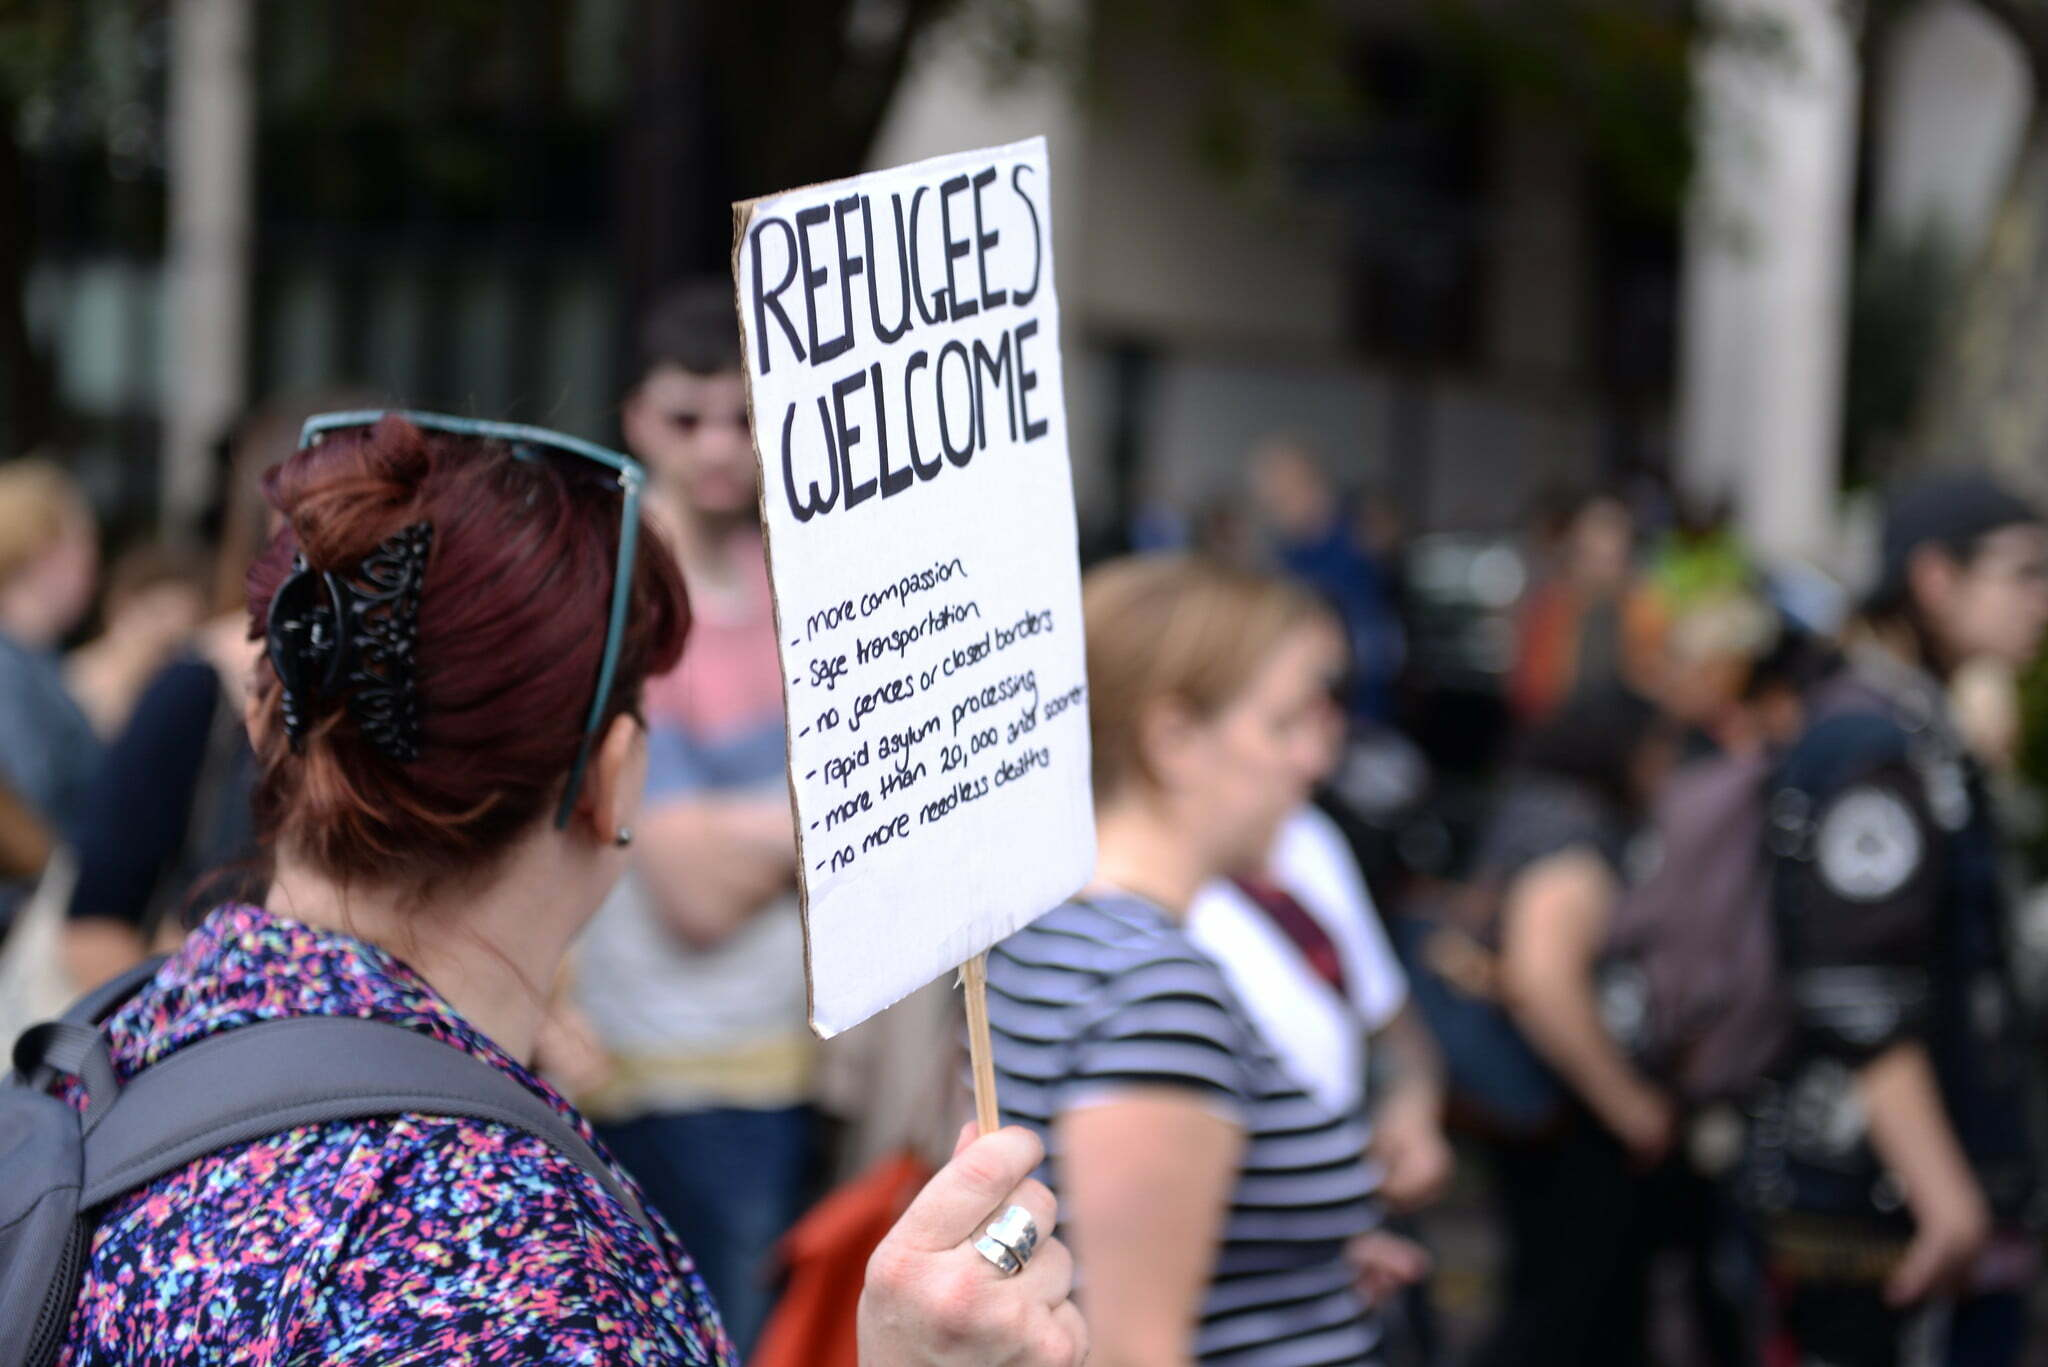 Britons march again to show refugees still welcome